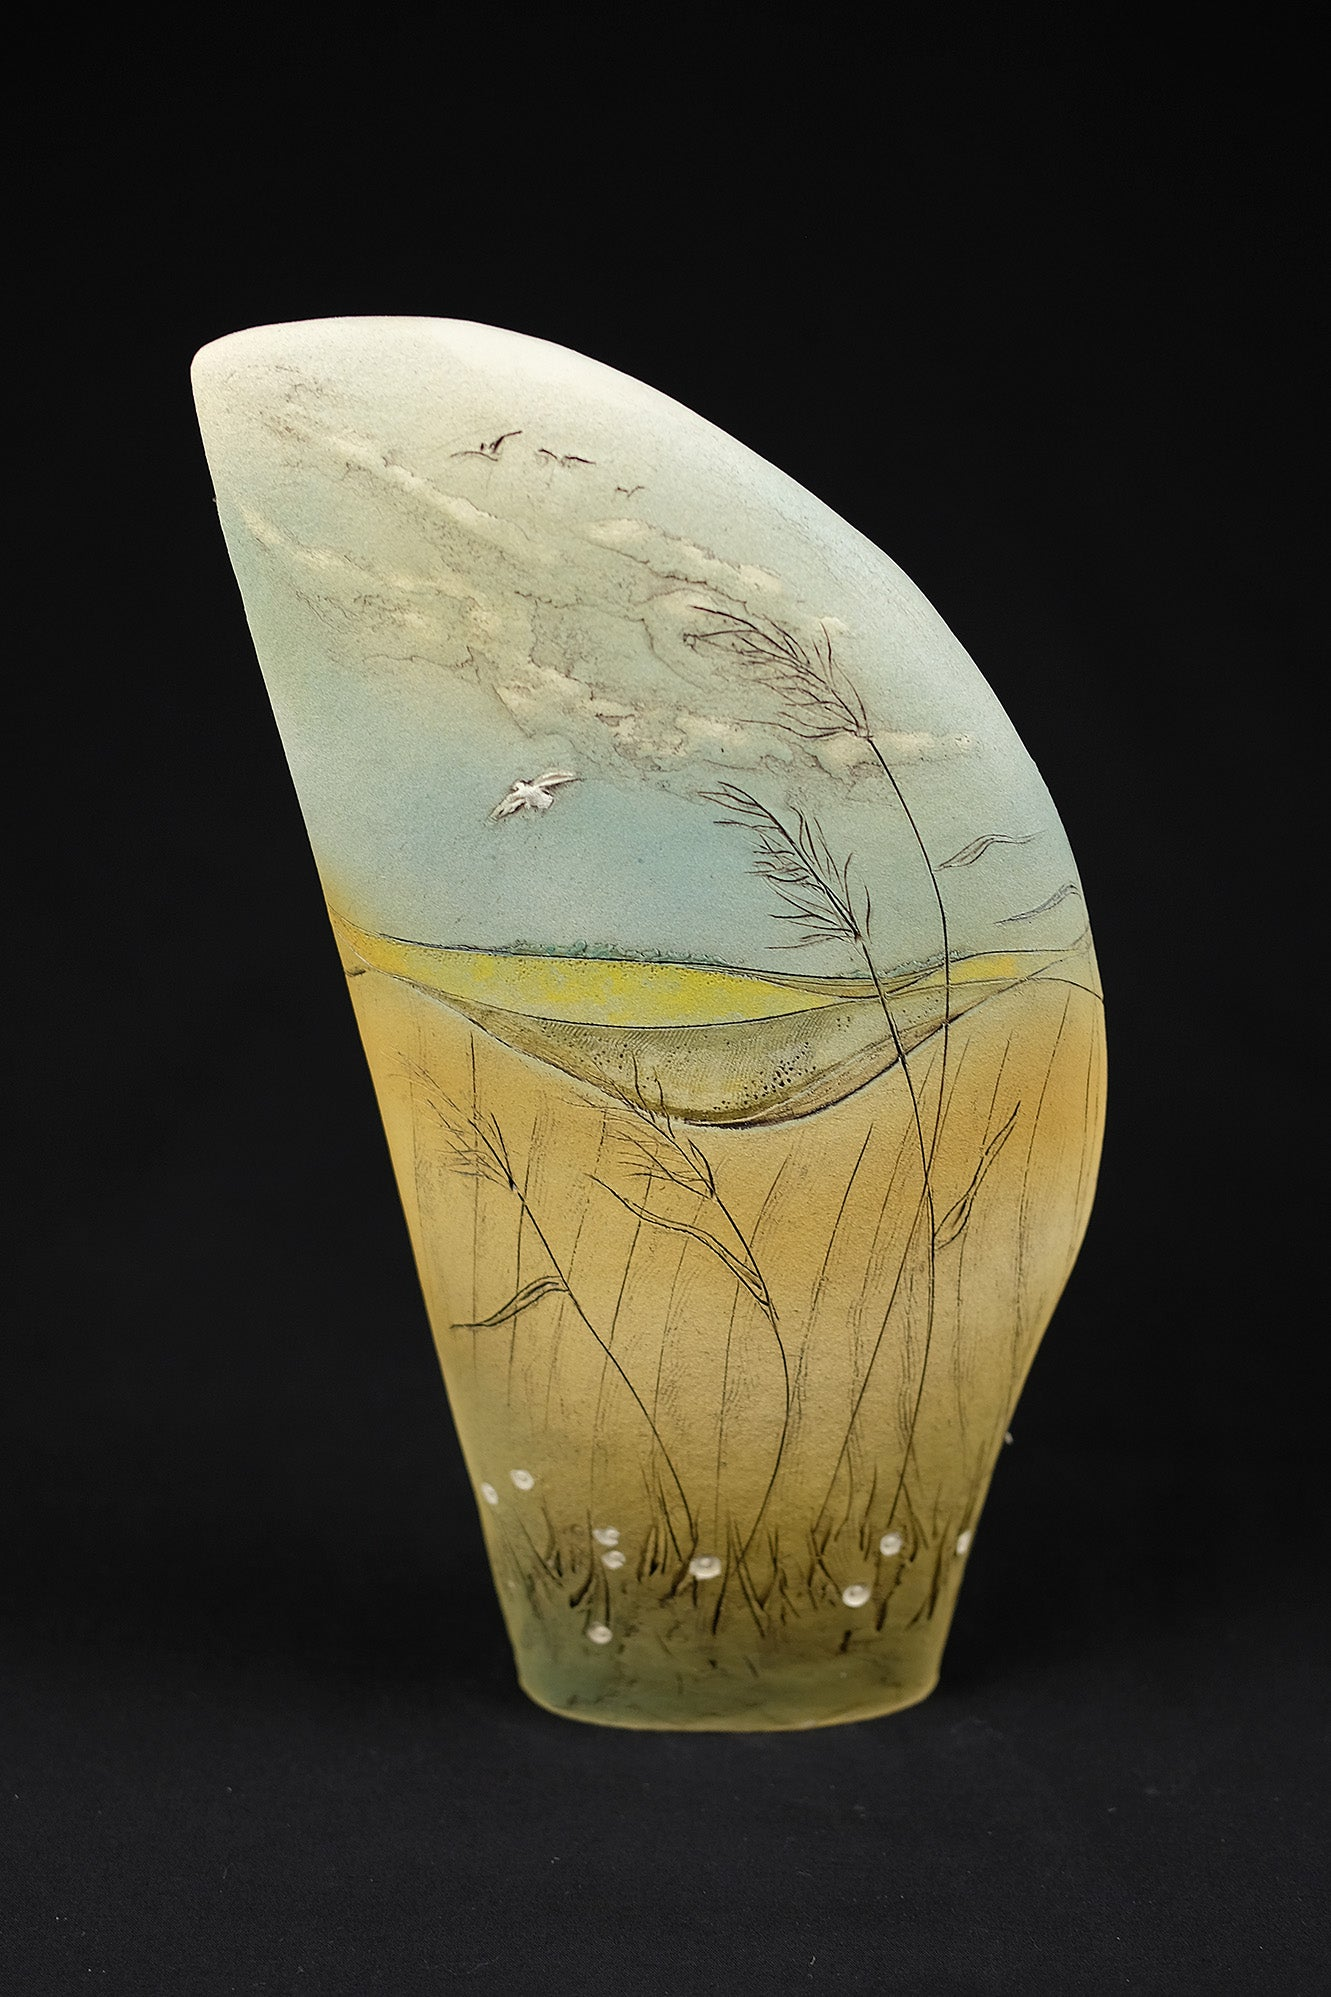 Image of JAN MAYLE 'SUFFOLK SUMMERS EVE' CERAMIC SCULPTURE